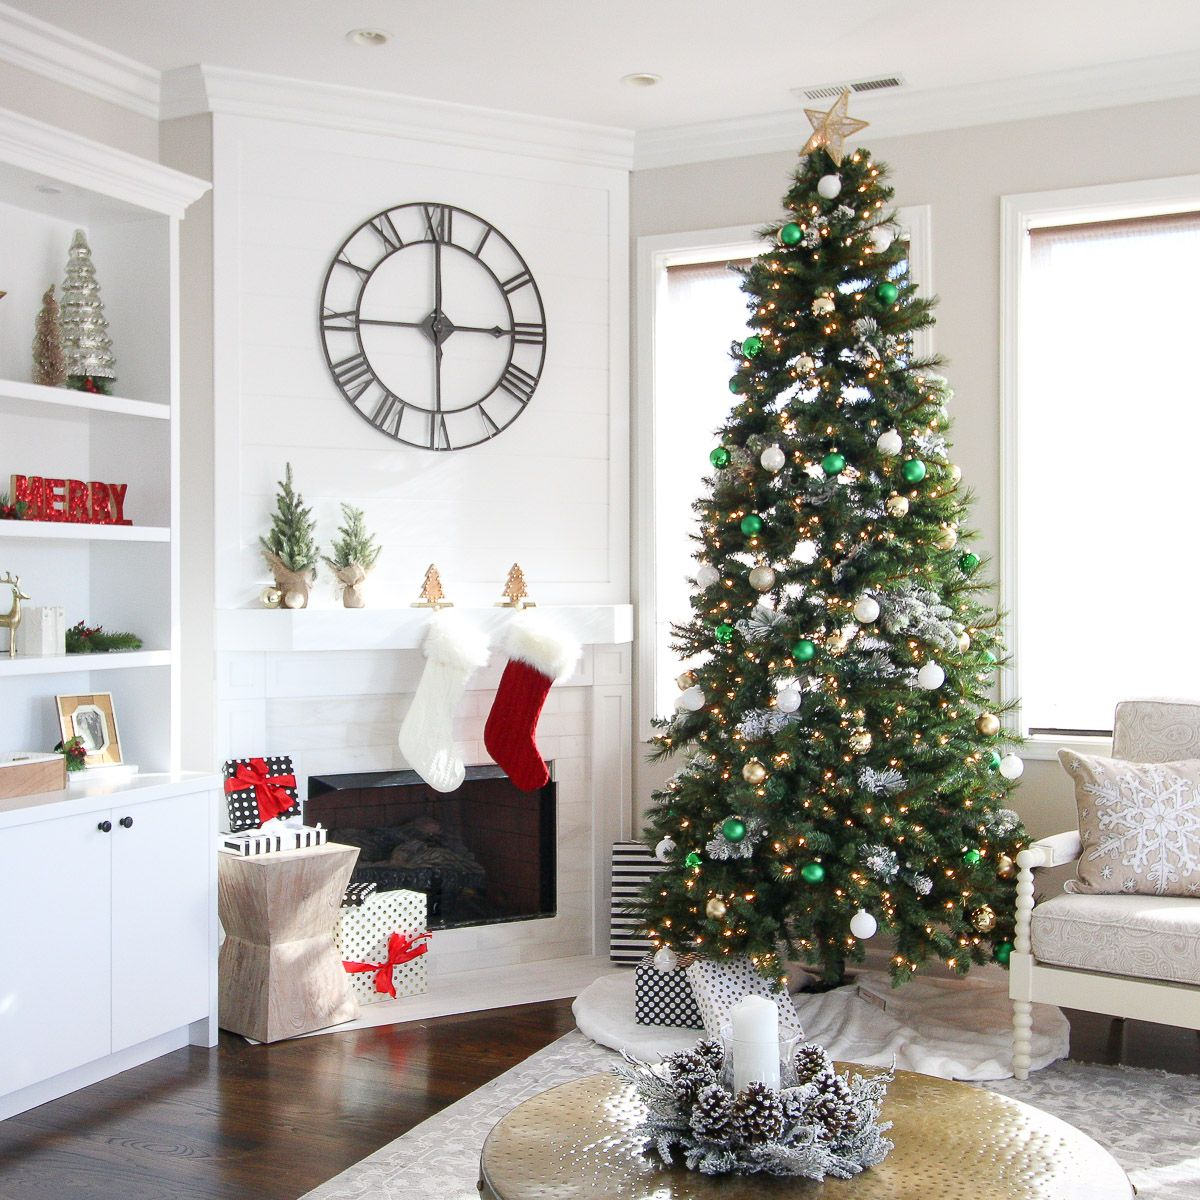 Holiday Decorating On a Budget Decor, Home decor